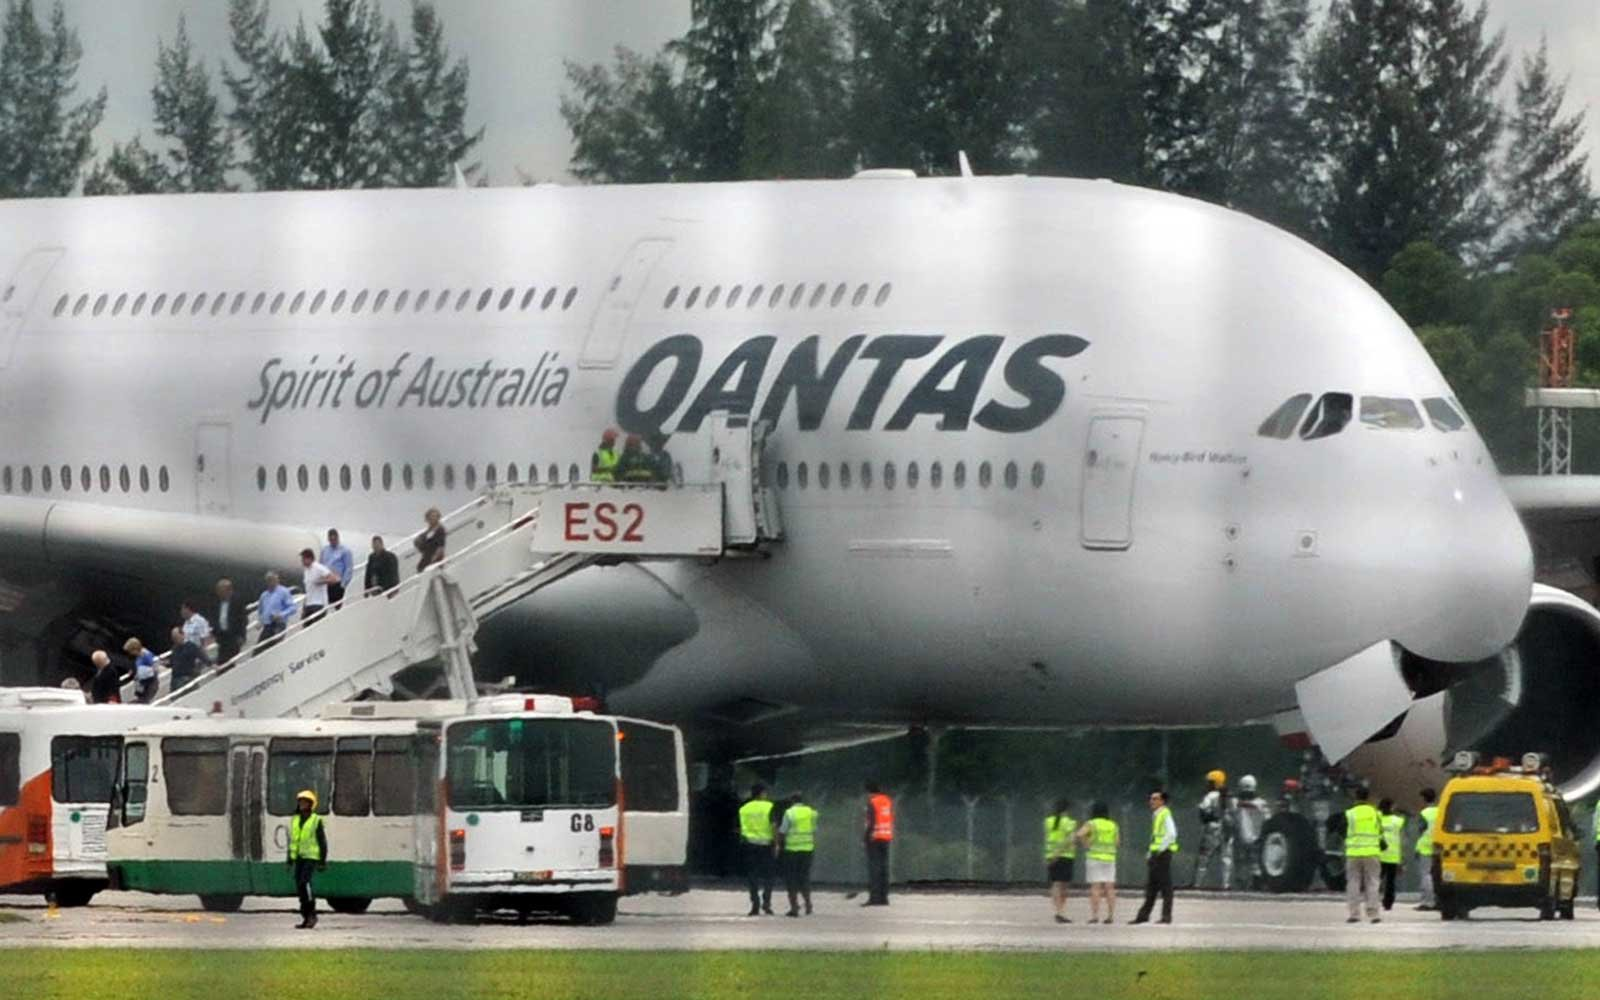 Passengers unboard a troubled Qantas Air